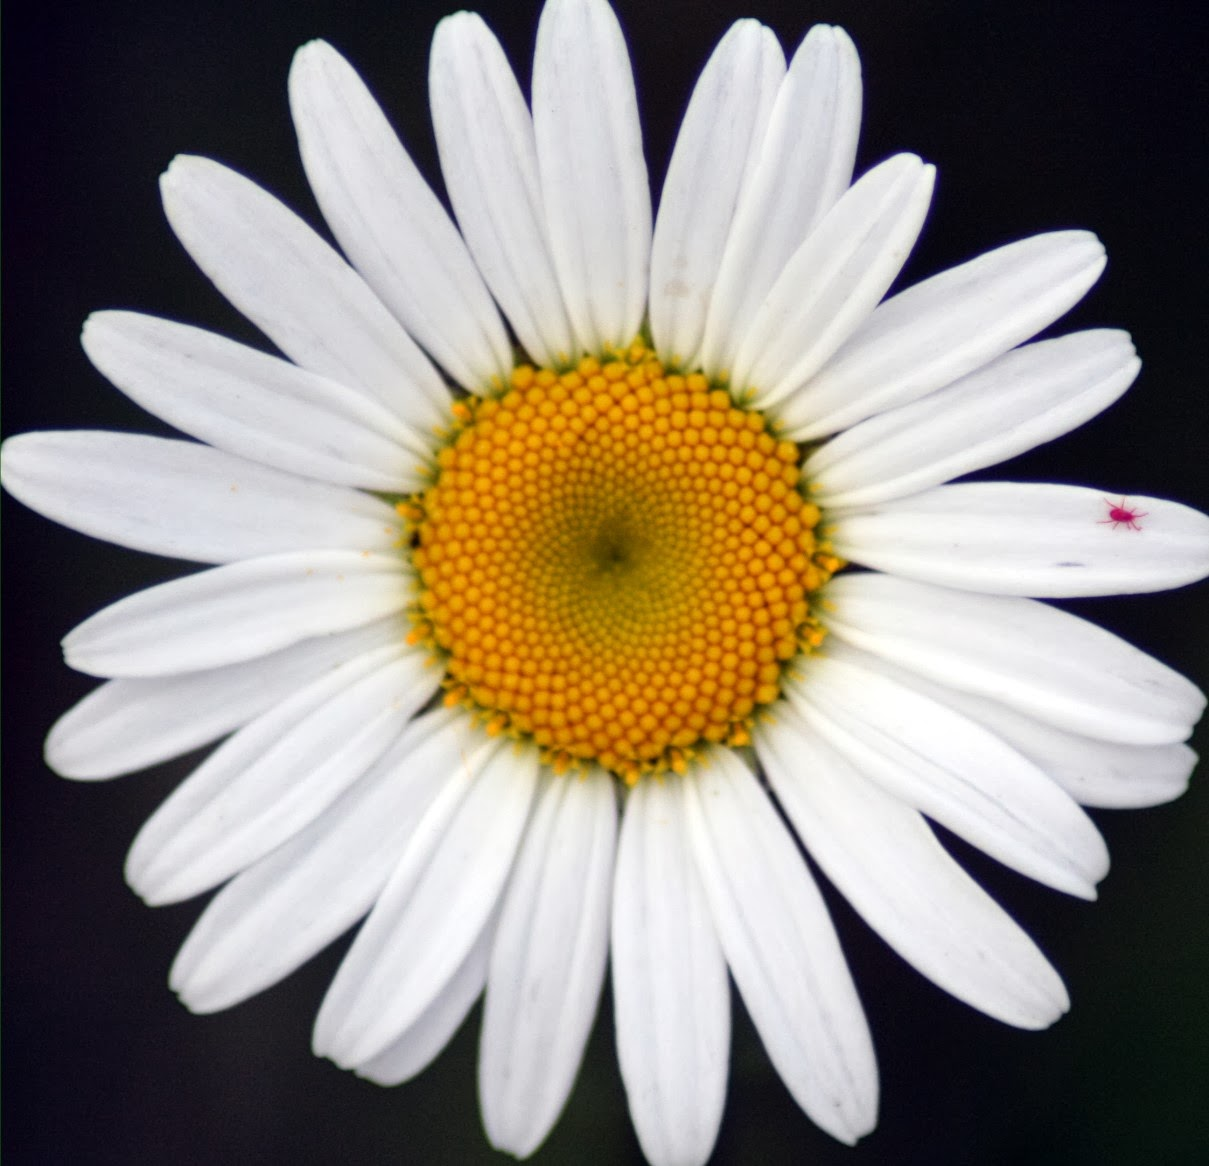 The flower garden daisy flower meaning daisy flower types daisies belong to the family asteraceae sunflower family which is the largest group of flowering plants as of date more than 12000 izmirmasajfo